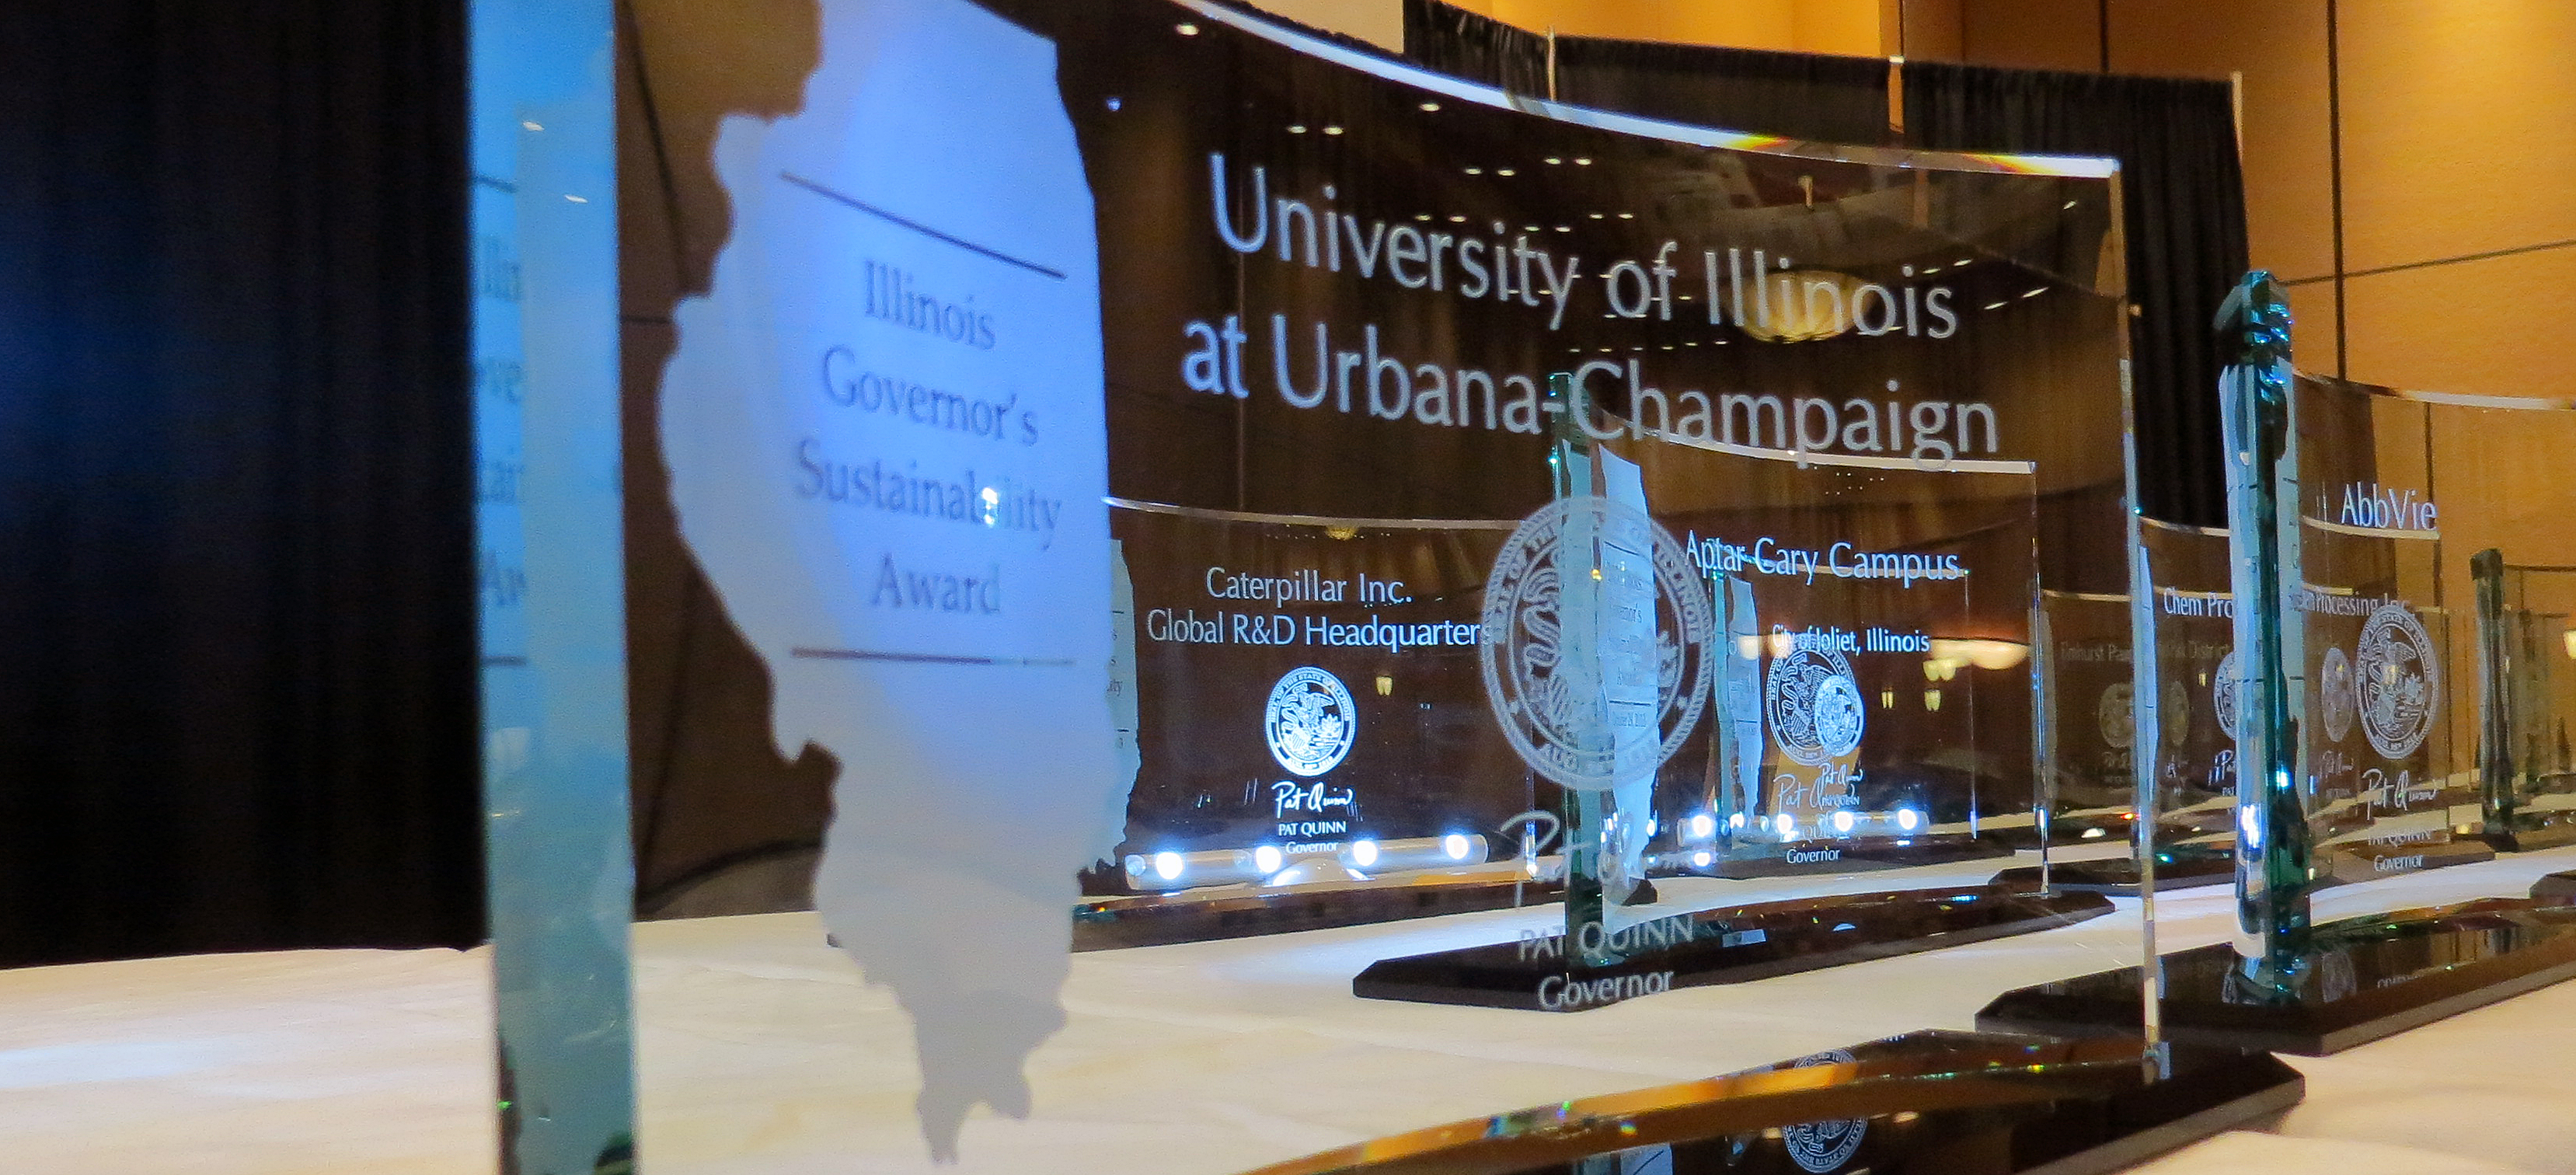 Governor's Award Trophy